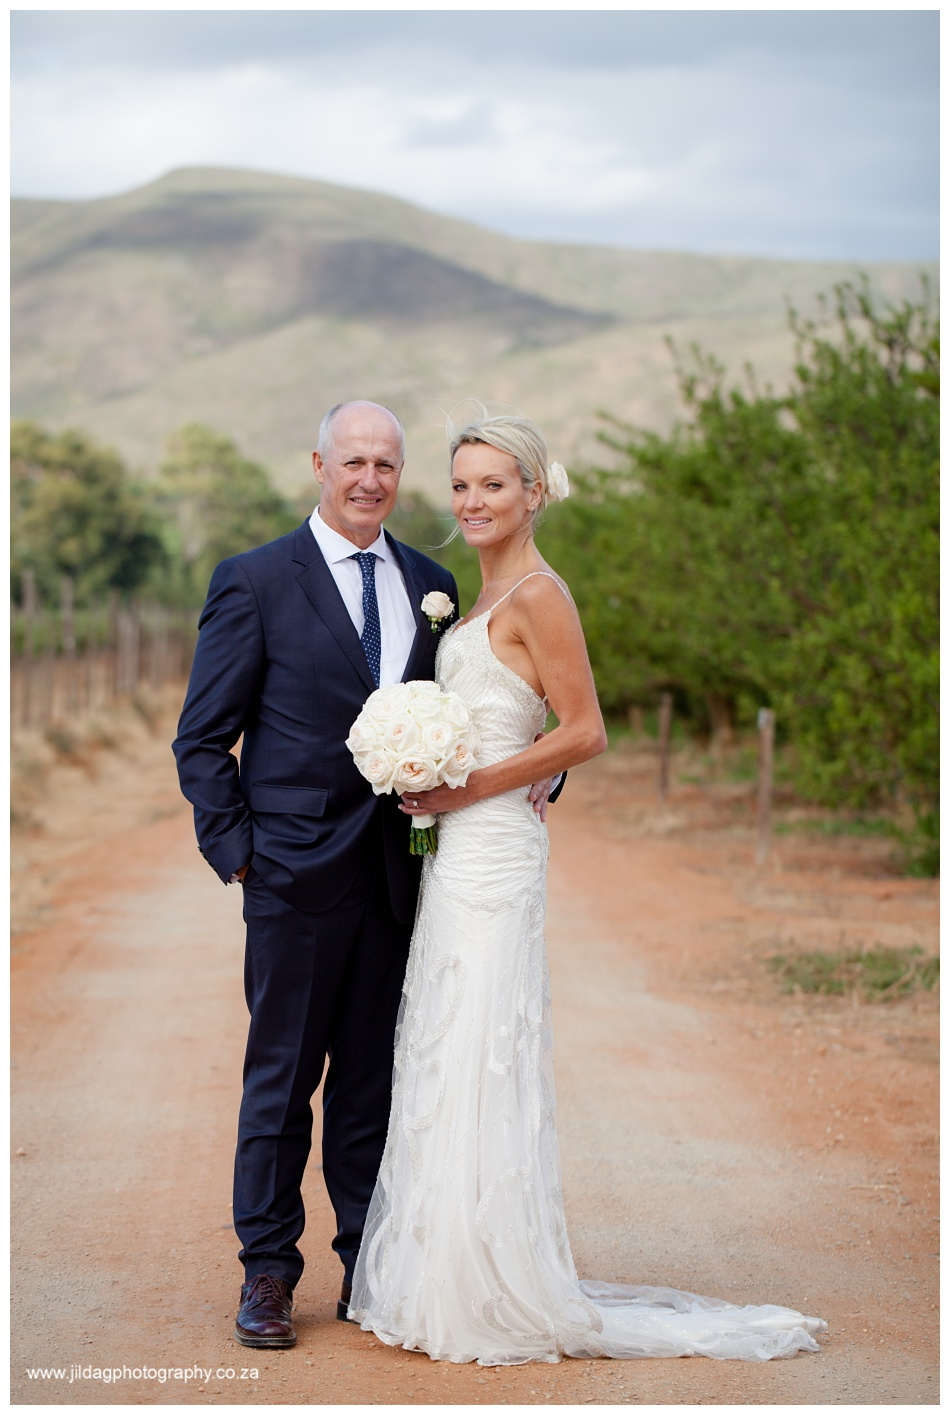 JIlda-G-Photograpy-Robertson-wedding-RiverGold_0338